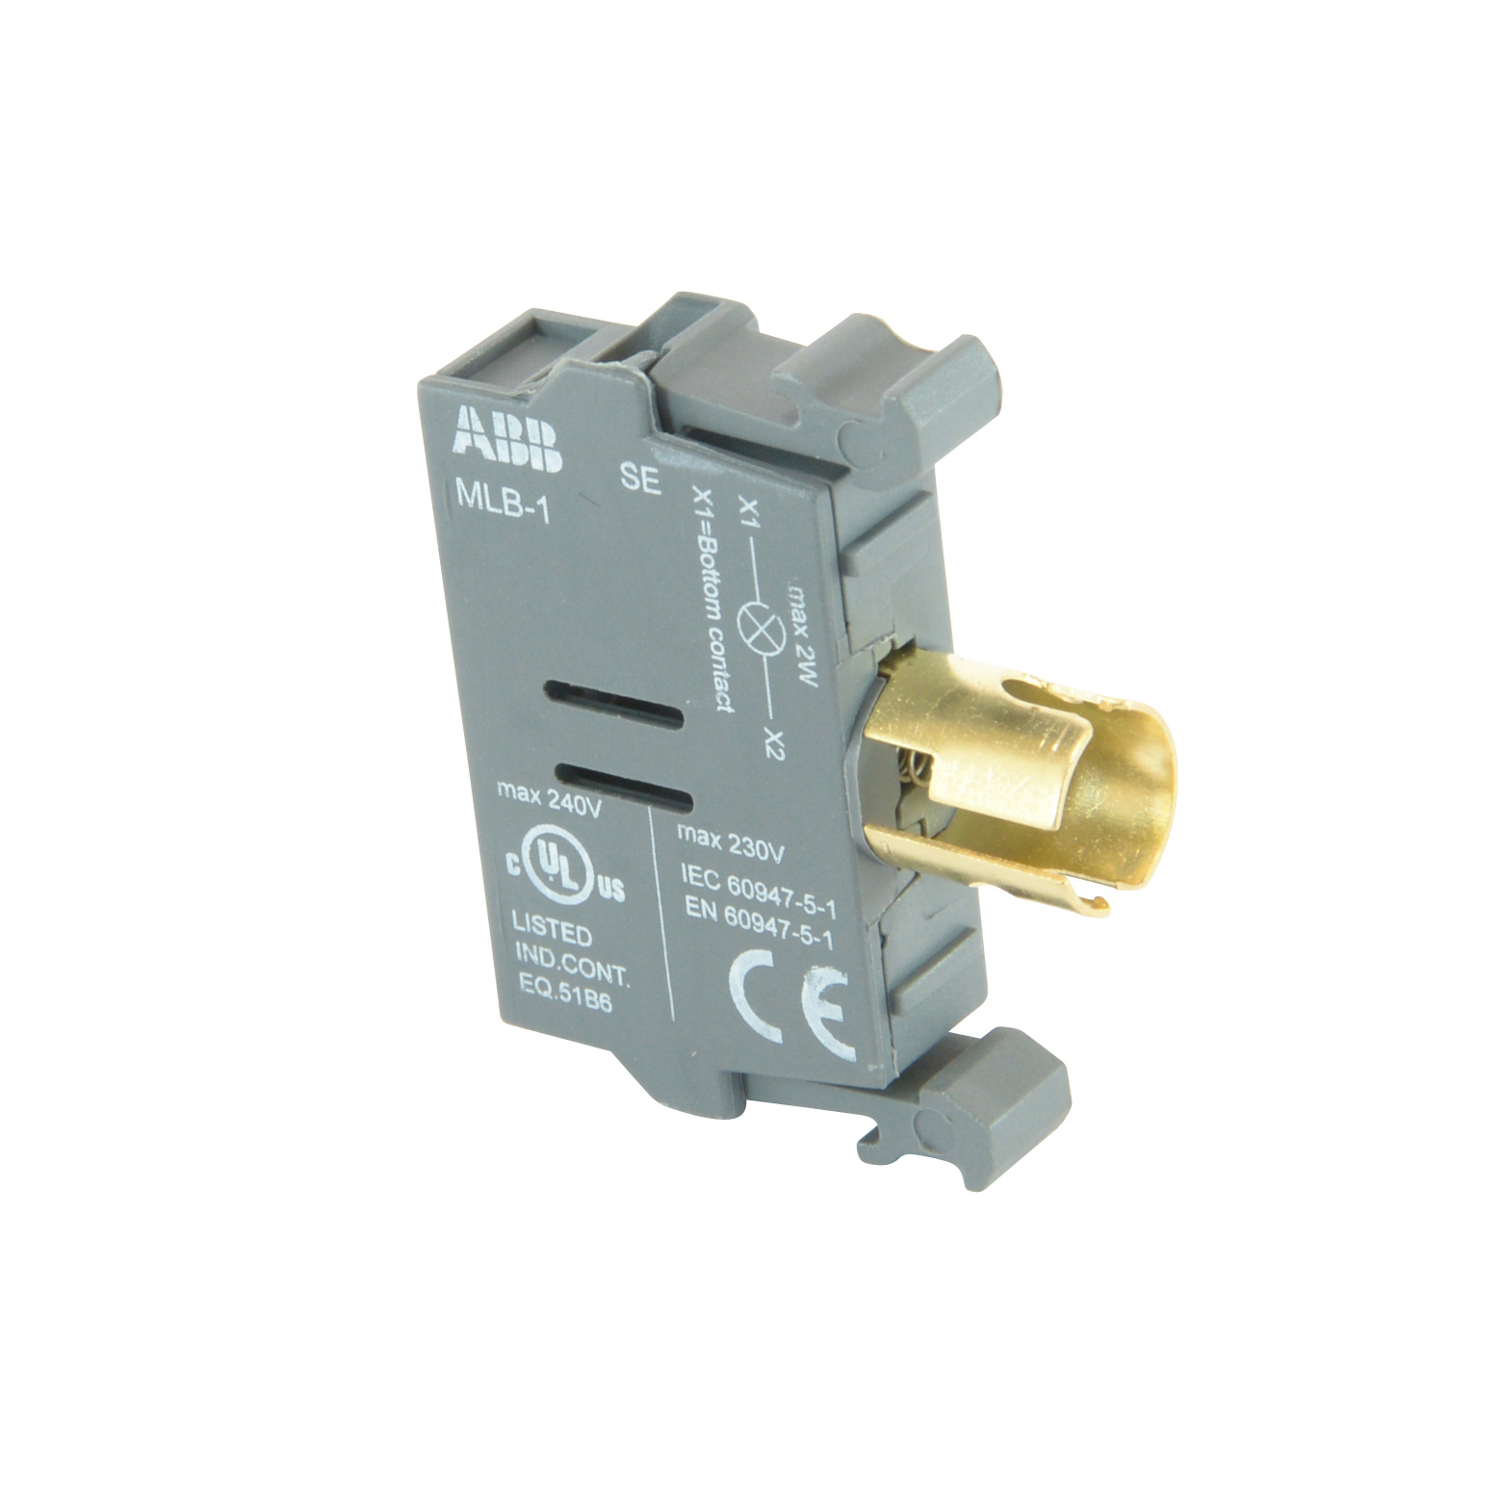 ABB MLB-1 Lamp Block, Direct Voltage, 2W/230V, Accepts Incandescent or LED Bulb, 2W/230V Max, Less Bulb, No Holder